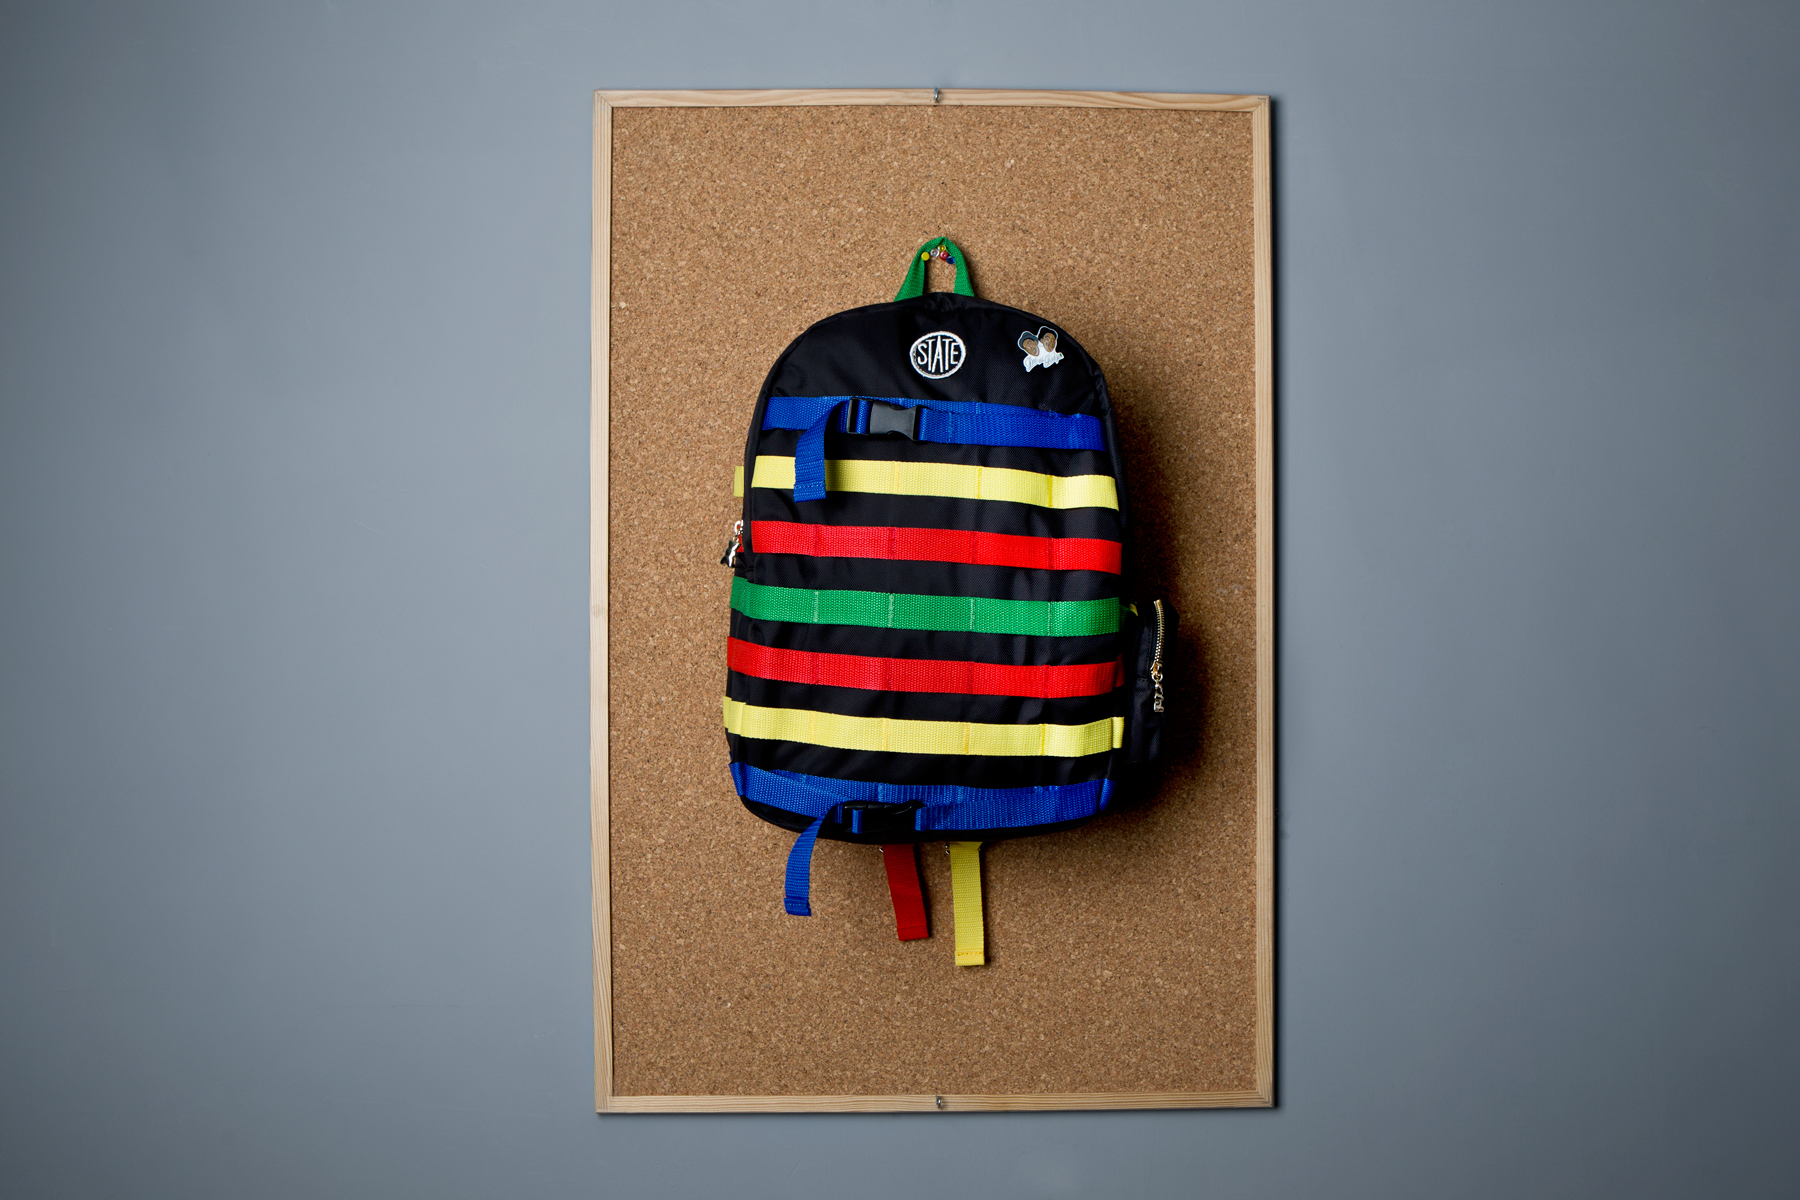 dee and ricky 2014 spring summer backpacks and lego pins